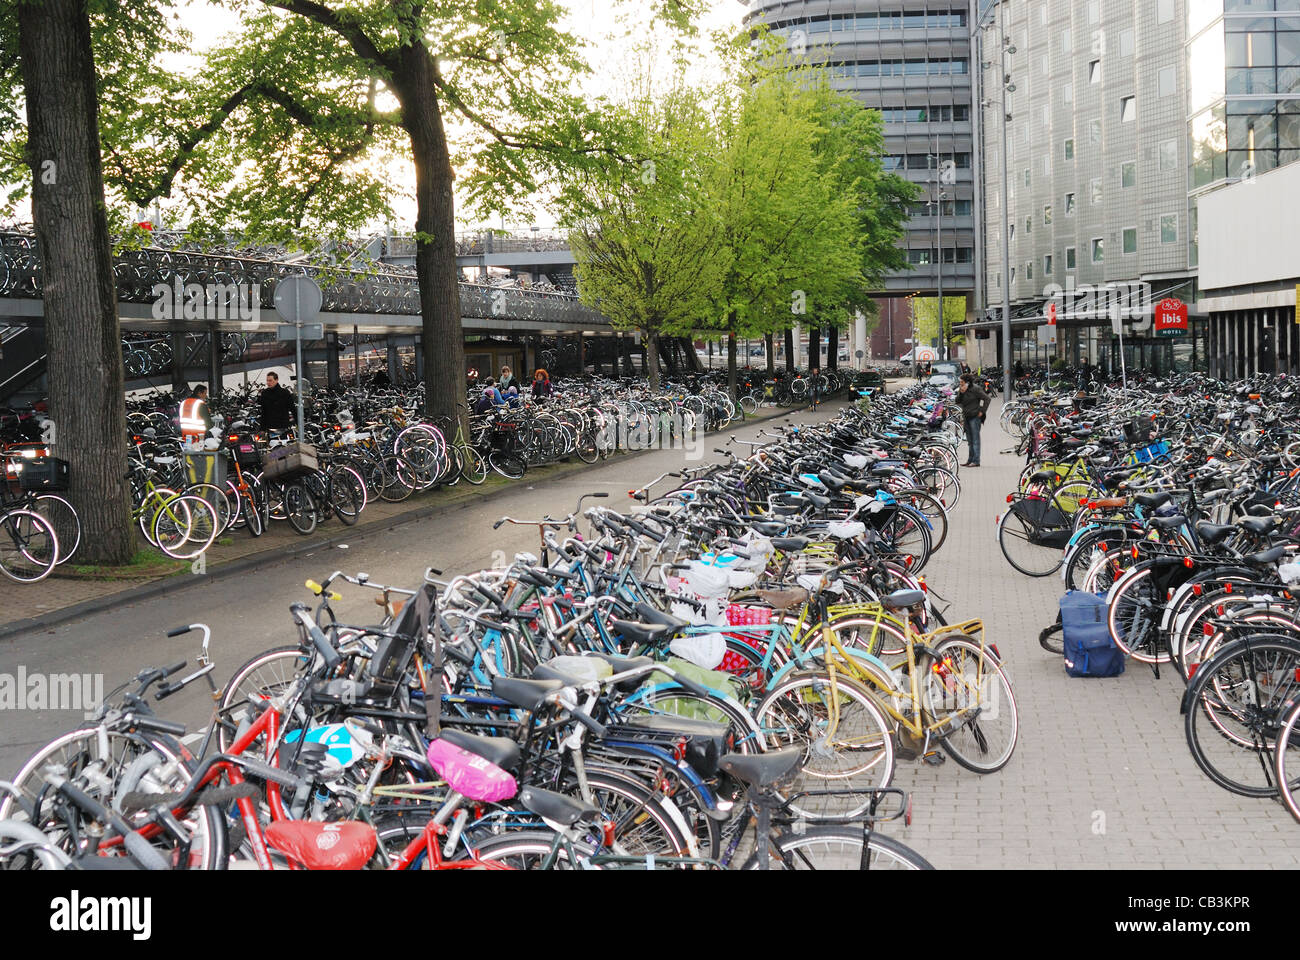 Bicycle parking lot in Amsterdam - Stock Image